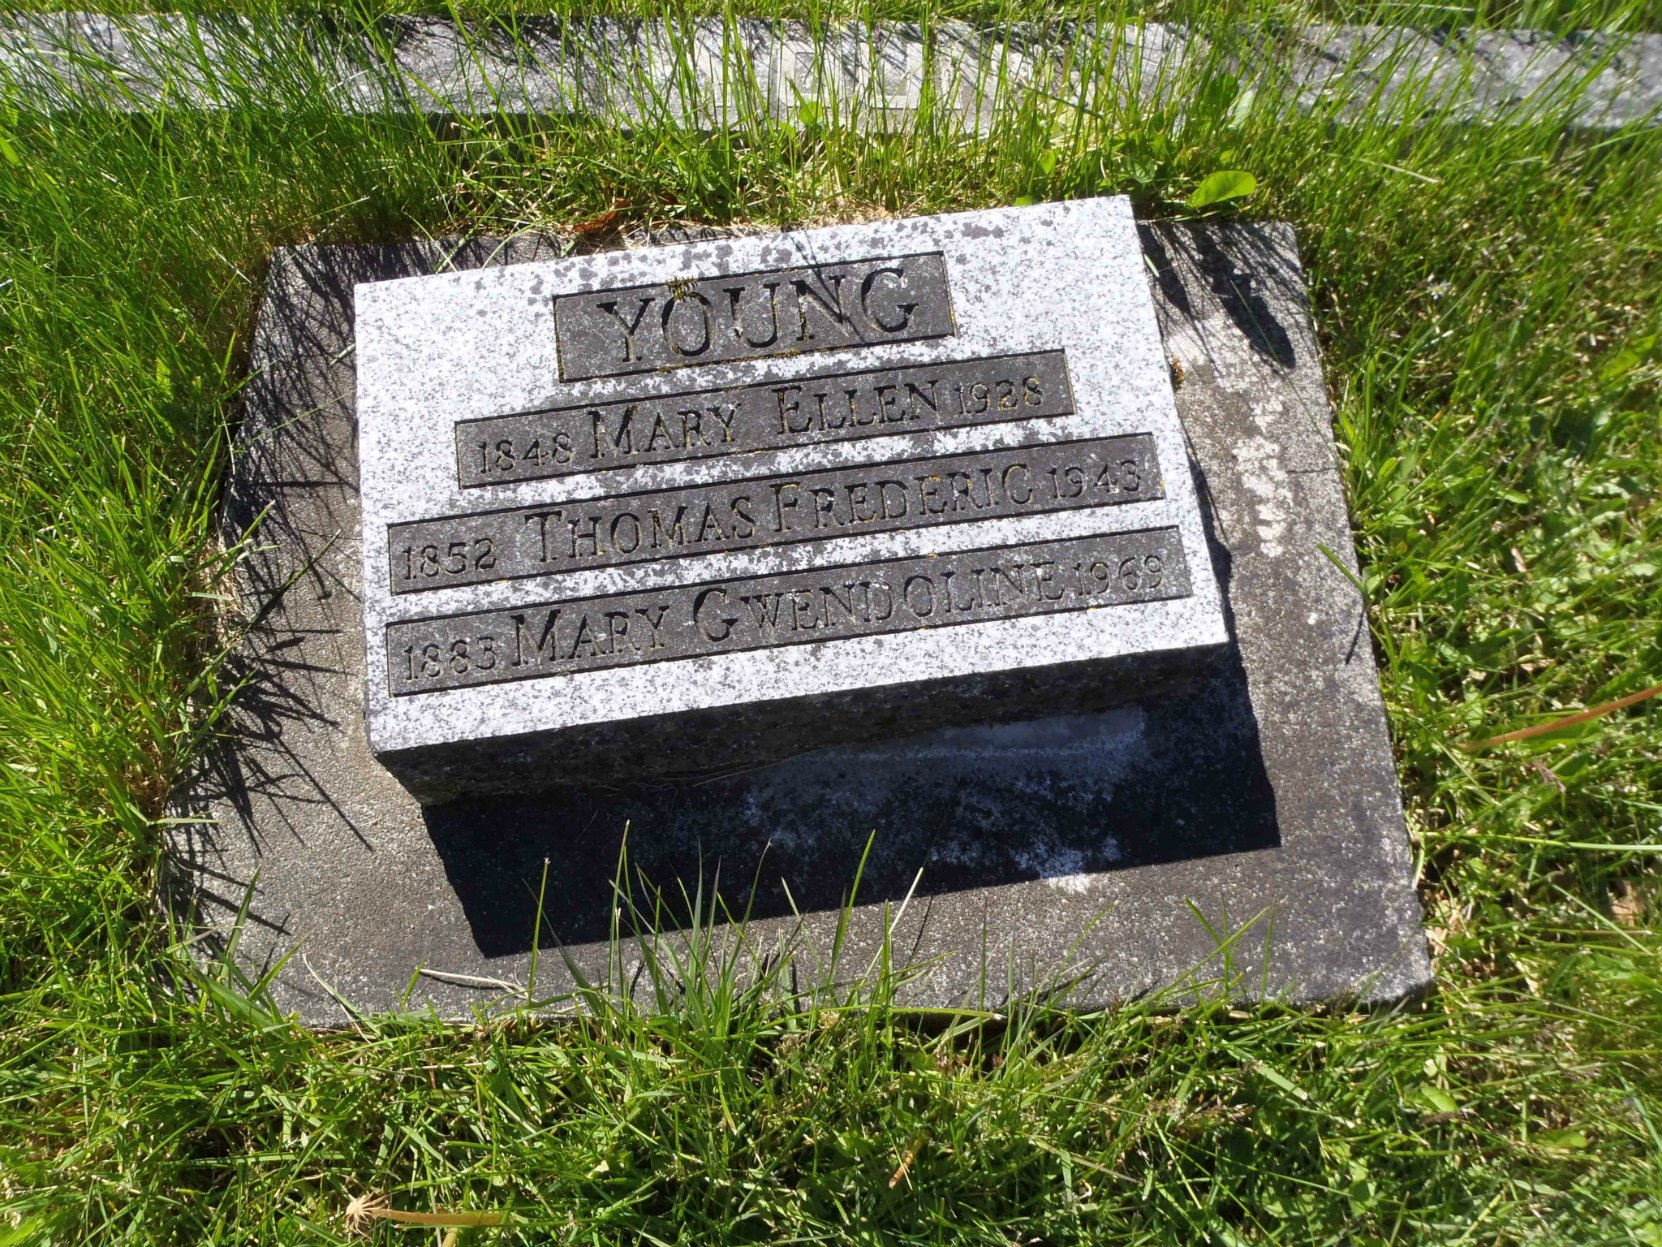 Thomas Frederick Young grave marker, St. Mary's Somenos Anglican Cemetery, North Cowichan, B.C.